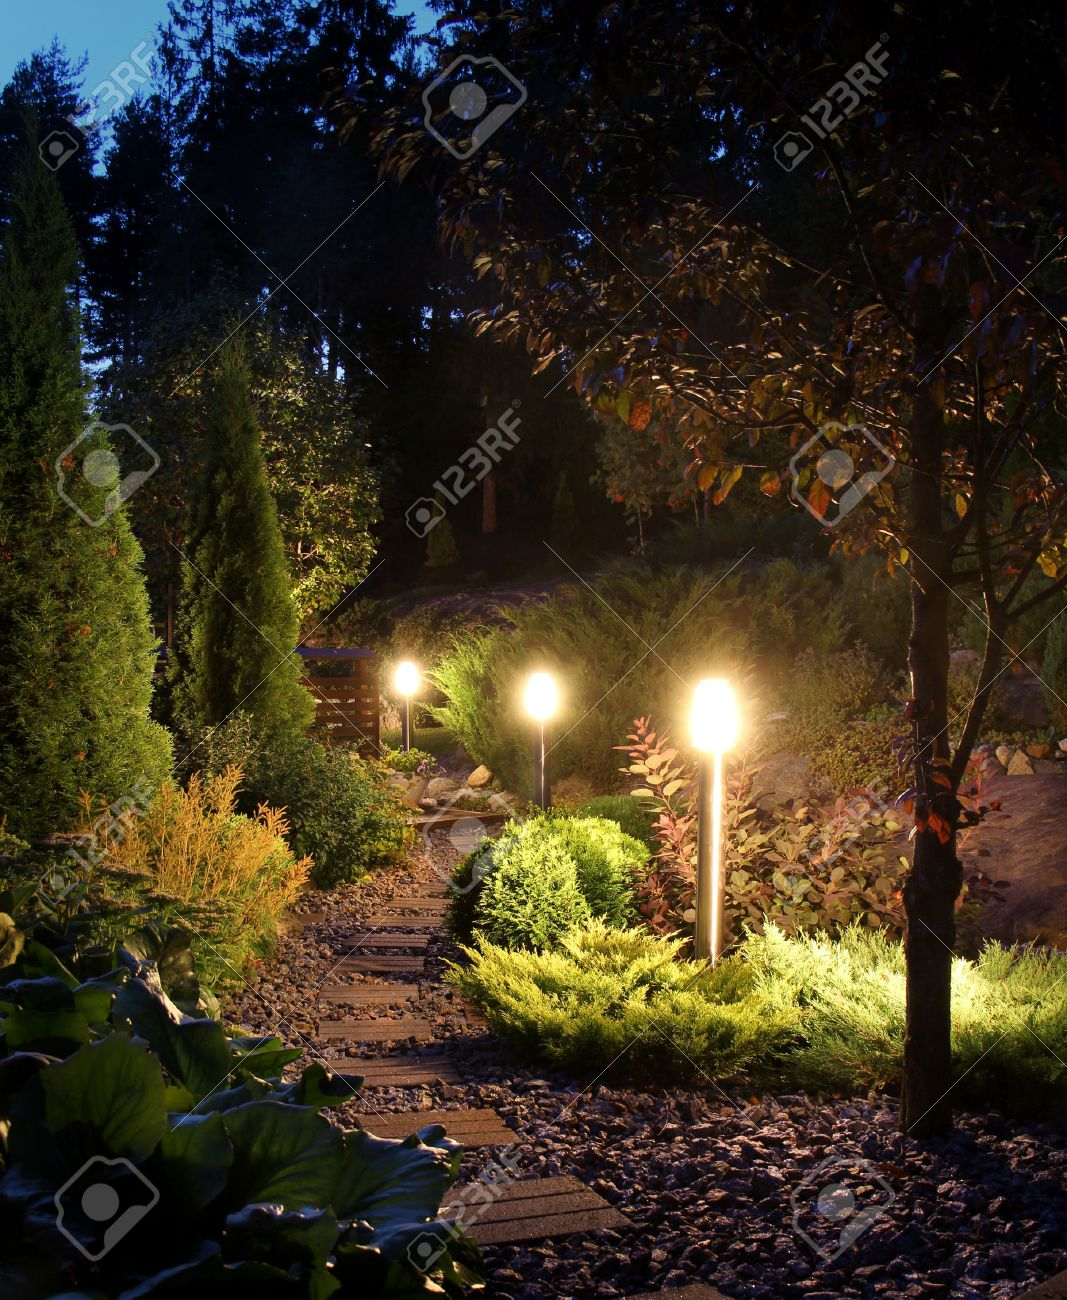 Outdoor lighting images stock pictures royalty free outdoor illuminated home garden path patio lights in evening dusk stock photo mozeypictures Gallery